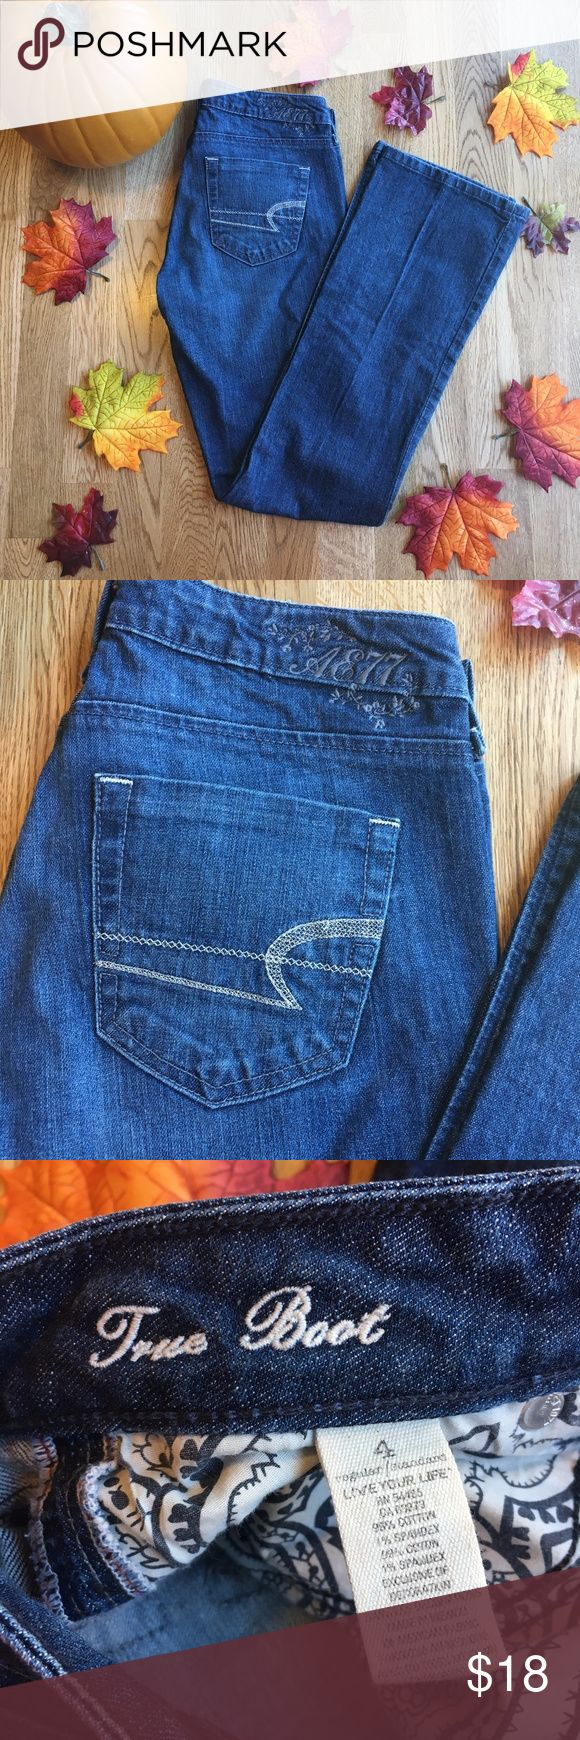 "American Eagle AE 77 True Boot Jeans EUC! Shiny silver stitching on back pockets and really pretty AE 77 embroidered on the back. No holes or stains. Please see the measurements in last photo! They are size 4 but waist is about 28"". I can sometimes wear a size 4 in AE (the stretchier jeans) but I cannot even get these on! Also the inseam is shorter than some jeans at about 30.5"". Please feel free to ask any questions so you can be confident in your purchase! These jeans are no longer listed…"